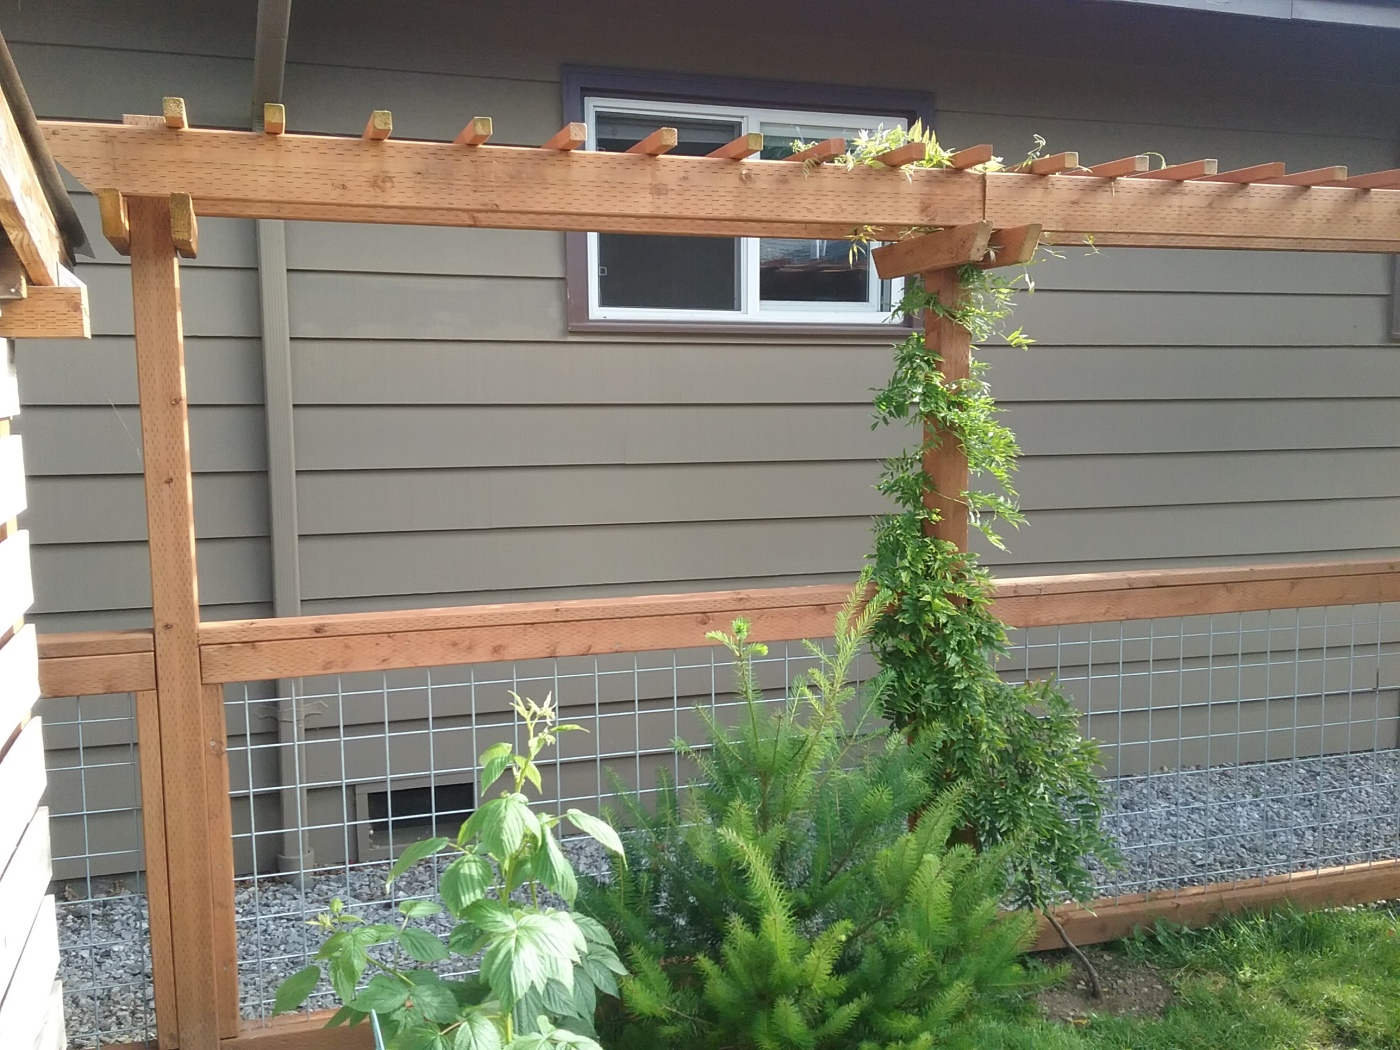 Brwarrickengineering i built an arbor for this part of the fence the wisteria is just starting to grow solutioingenieria Image collections